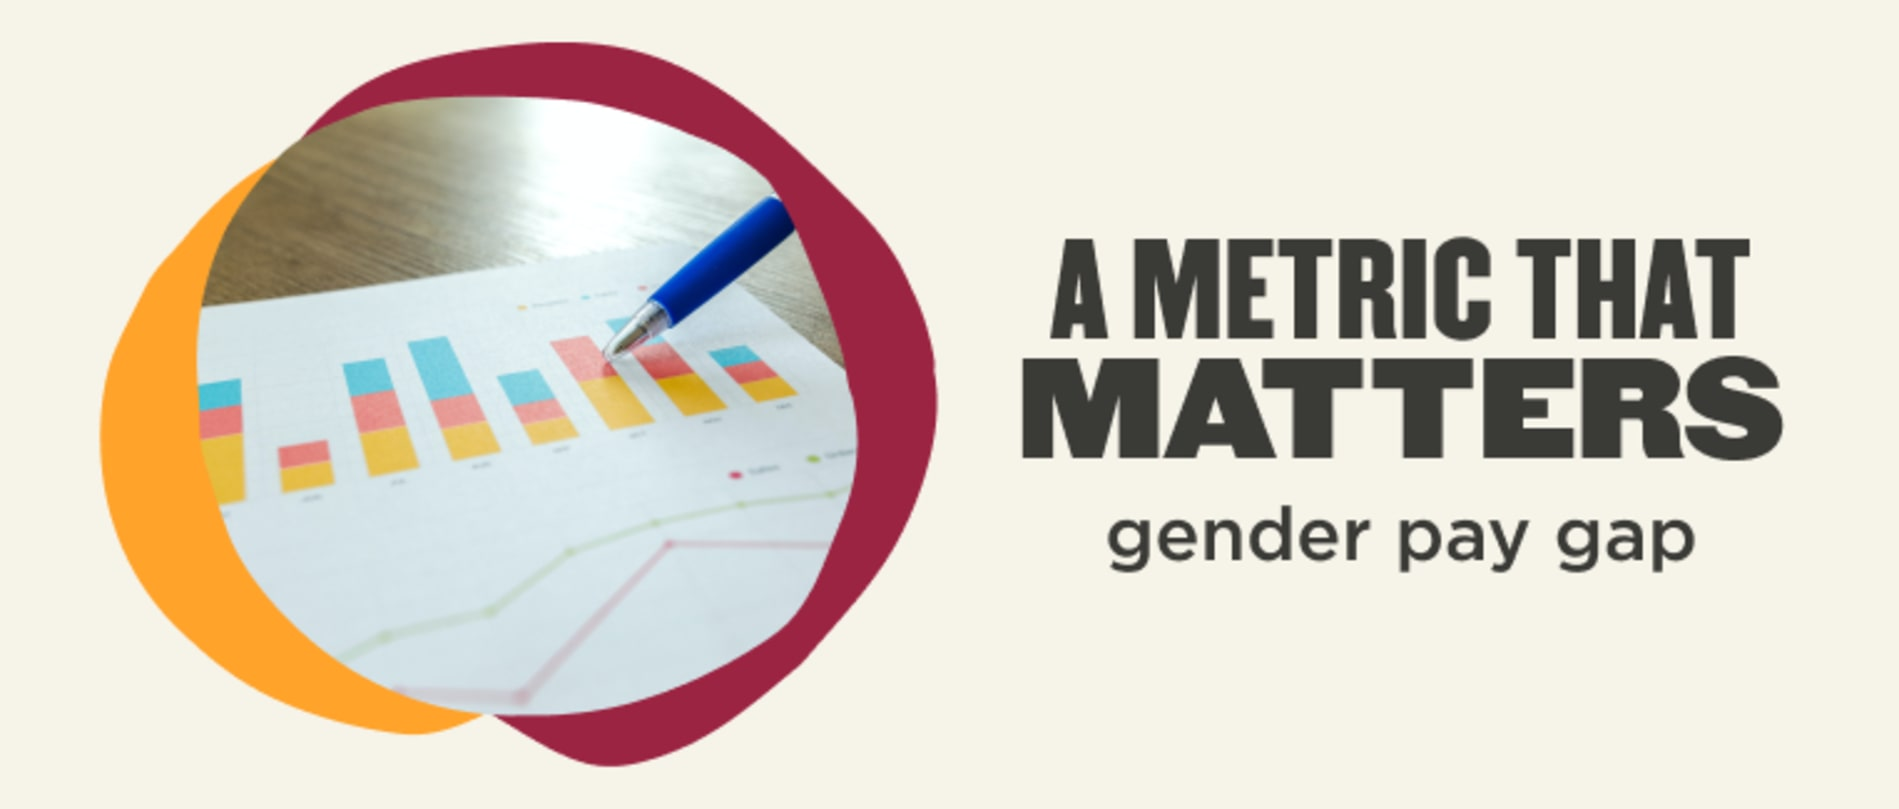 A metric that matters (gender pay gap)